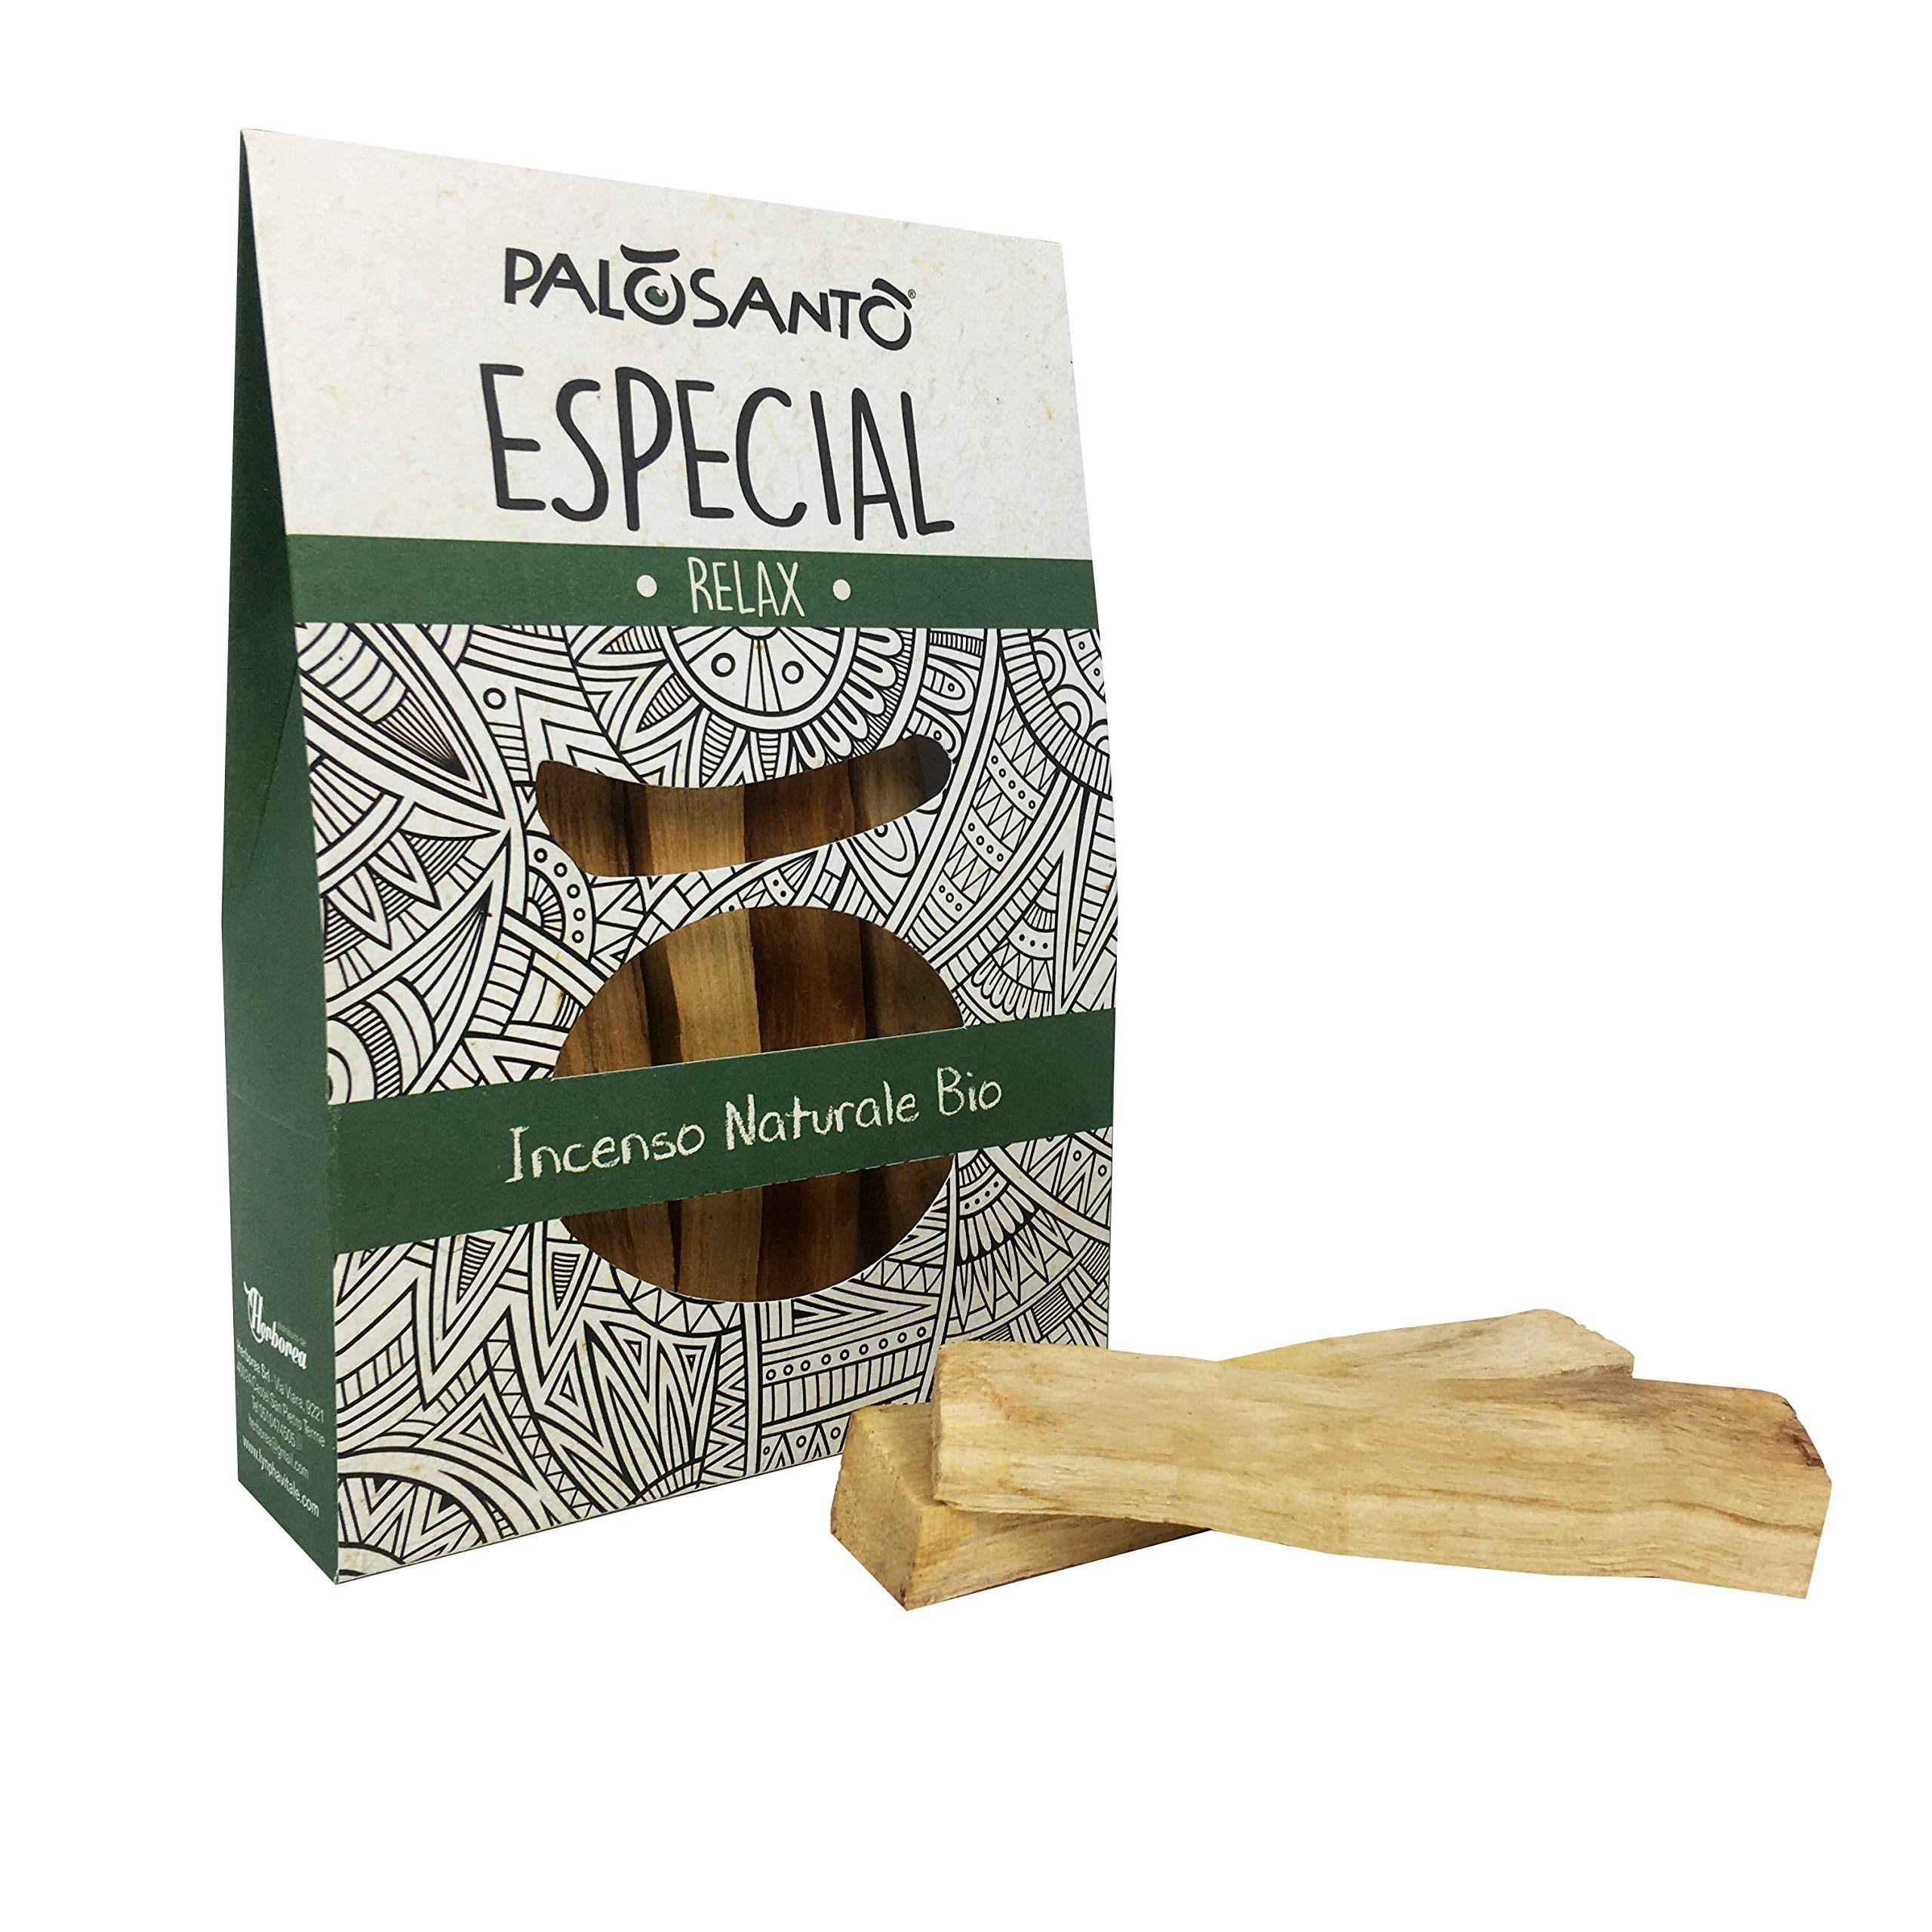 Palo Santo Sticks from Perù – Especial Quality – Larger and Thicker Natural Incense Sticks - Wild Harvested & Sustainably Sourced - Original Bursera Graveolens Holy Wood - 5 Sticks